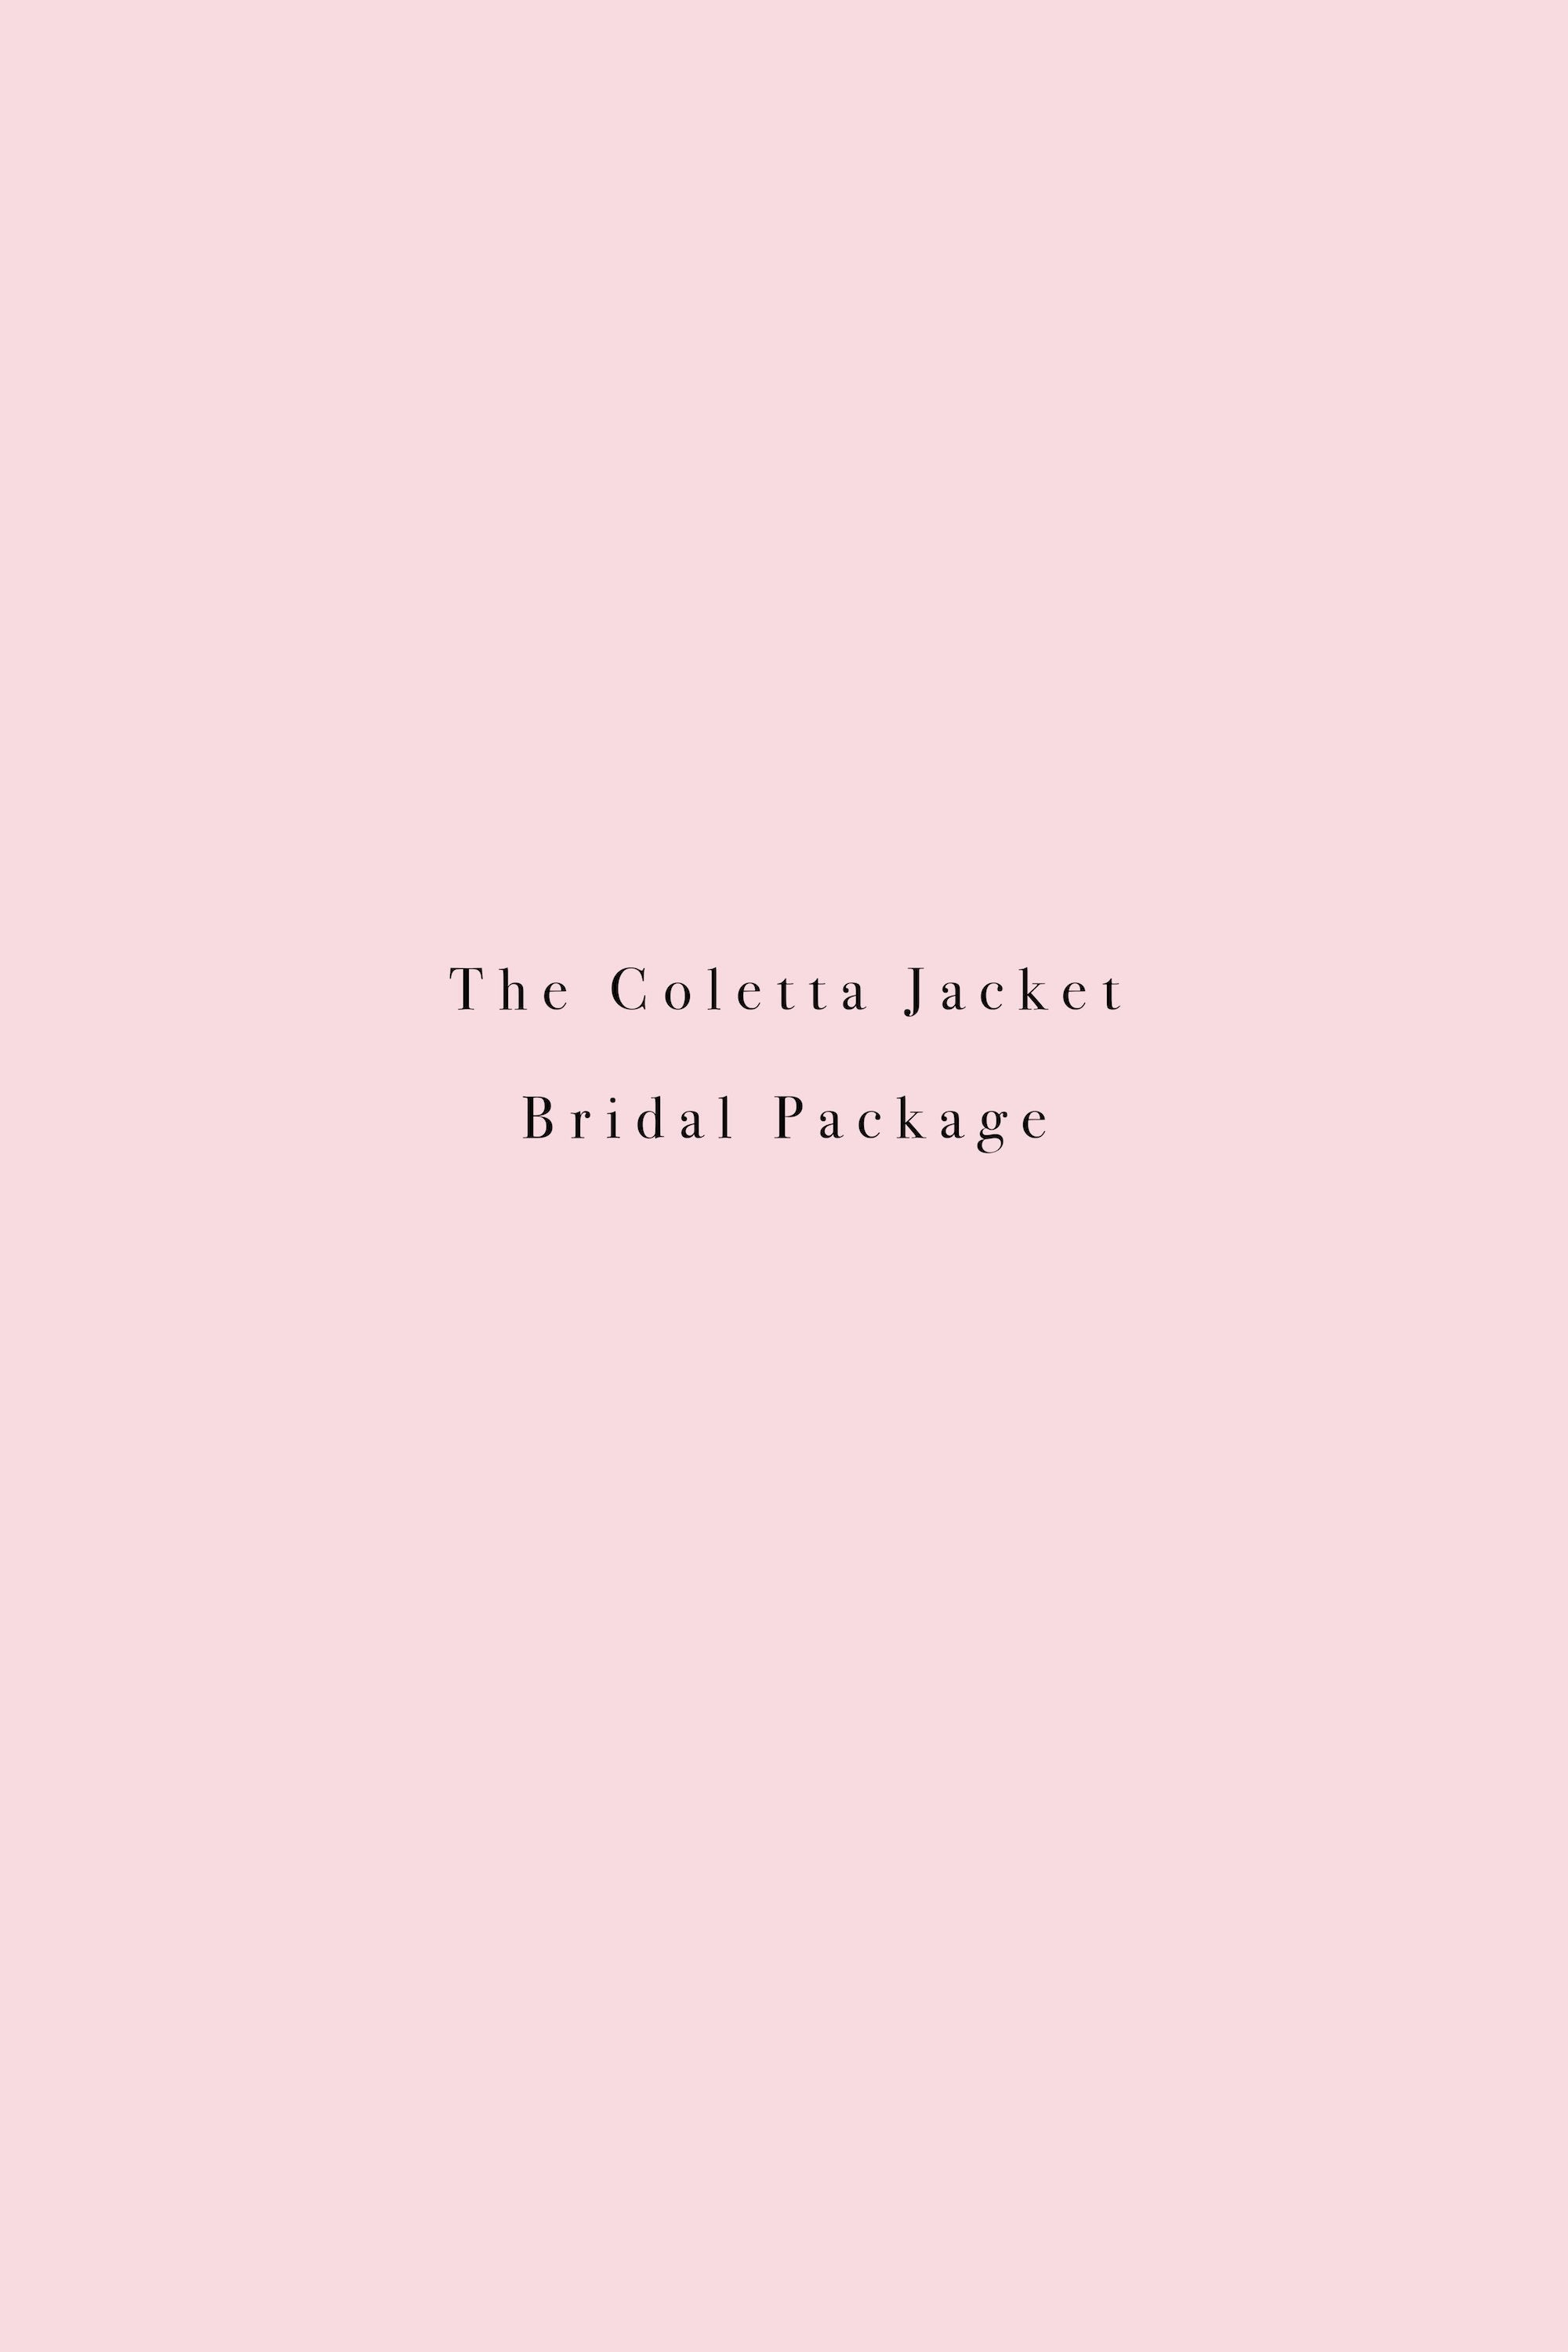 Coletta Bridal Package - 3 x Jackets + 1 complimentary